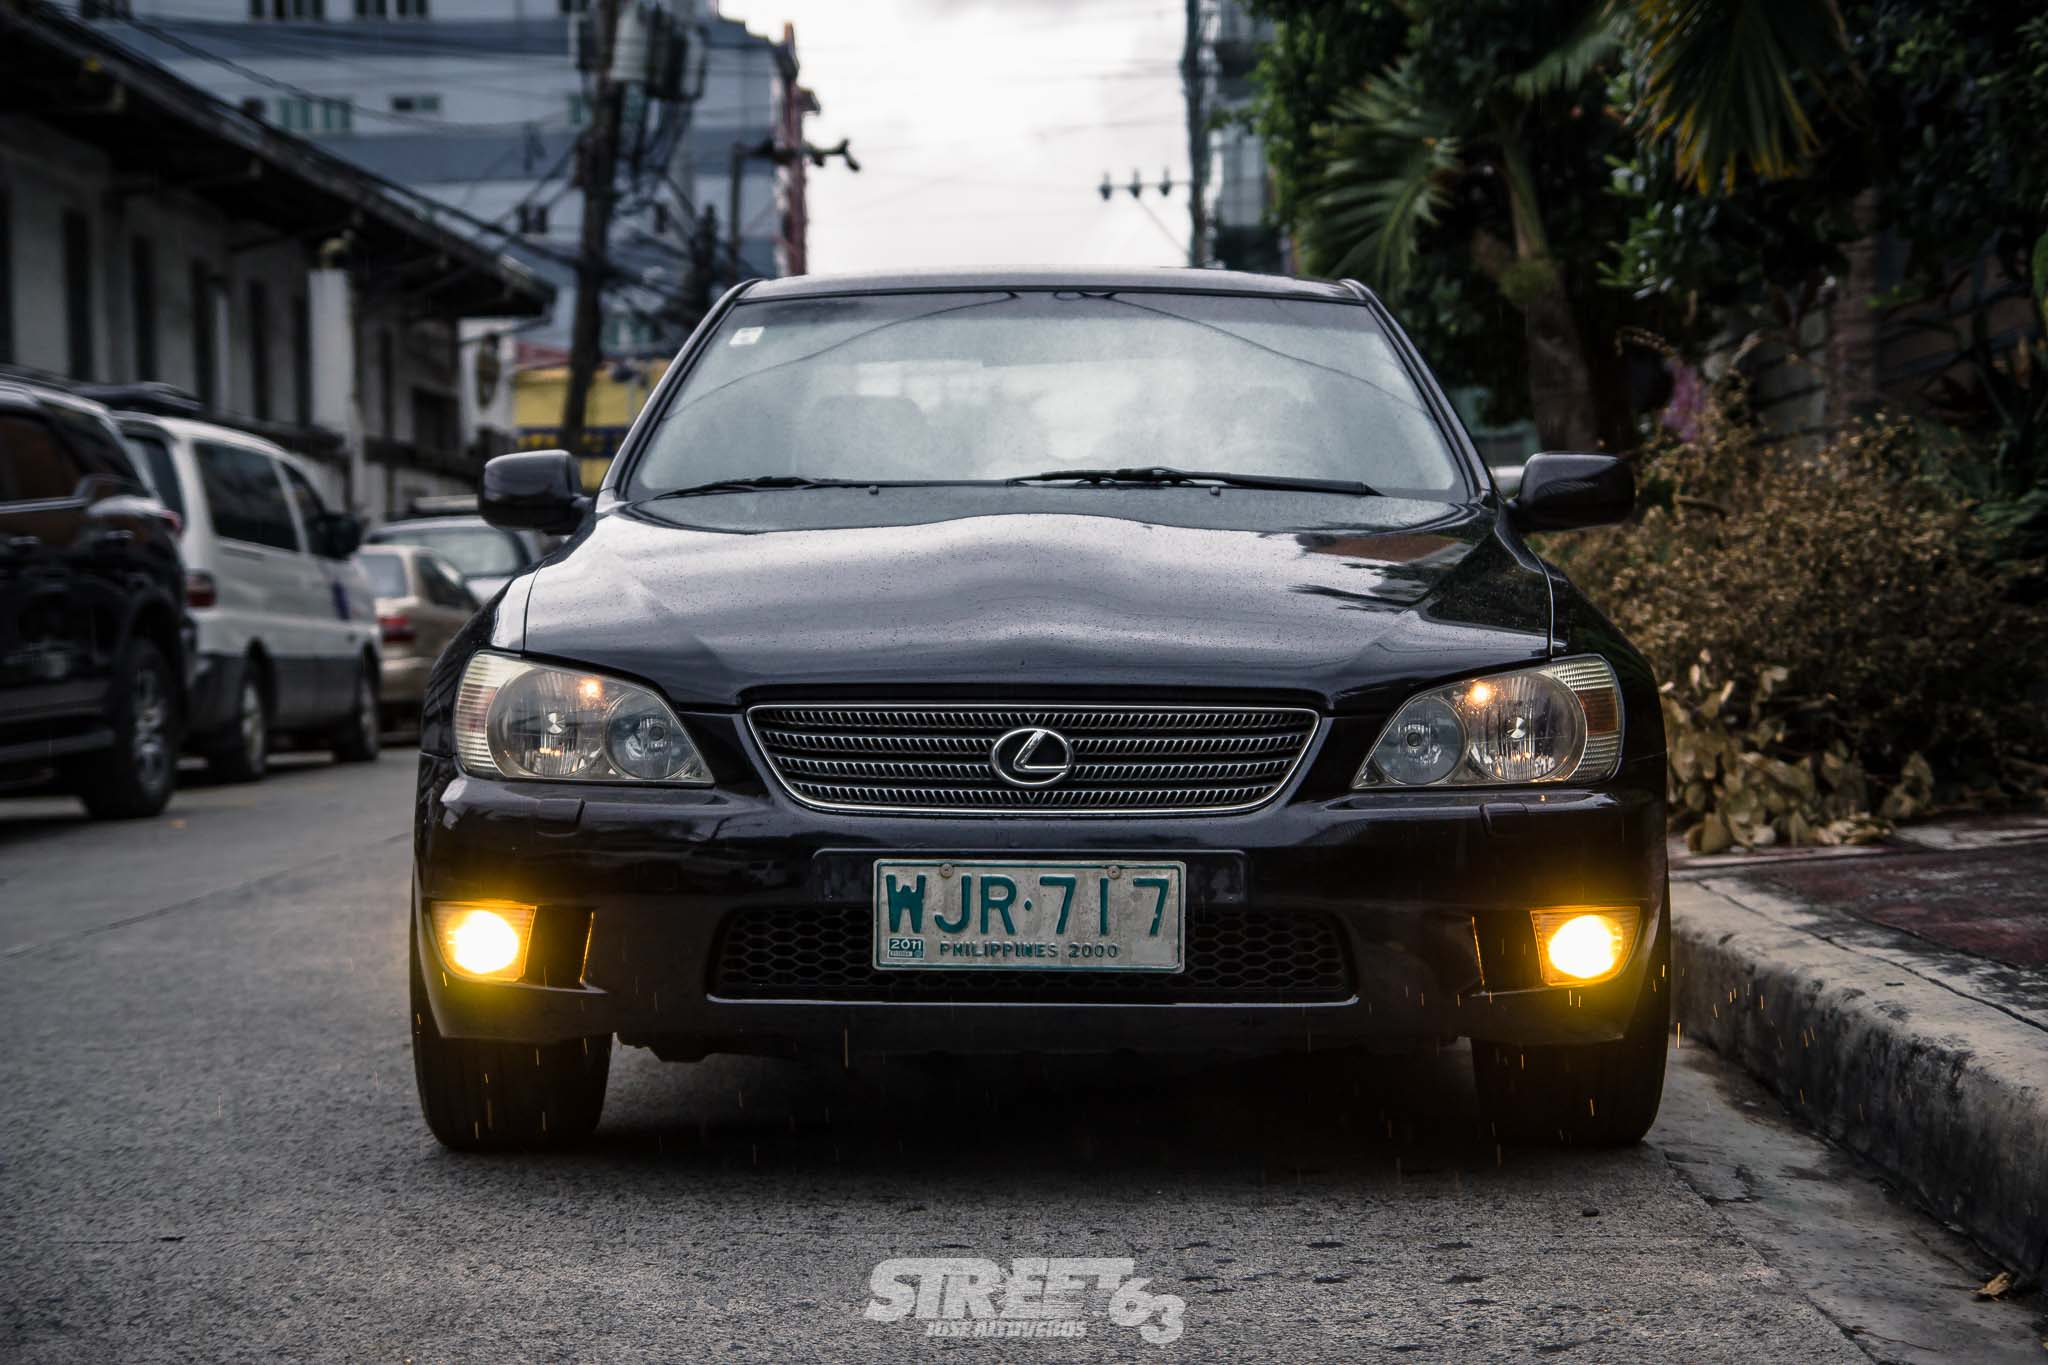 Staff Projects Lexus IS200 10